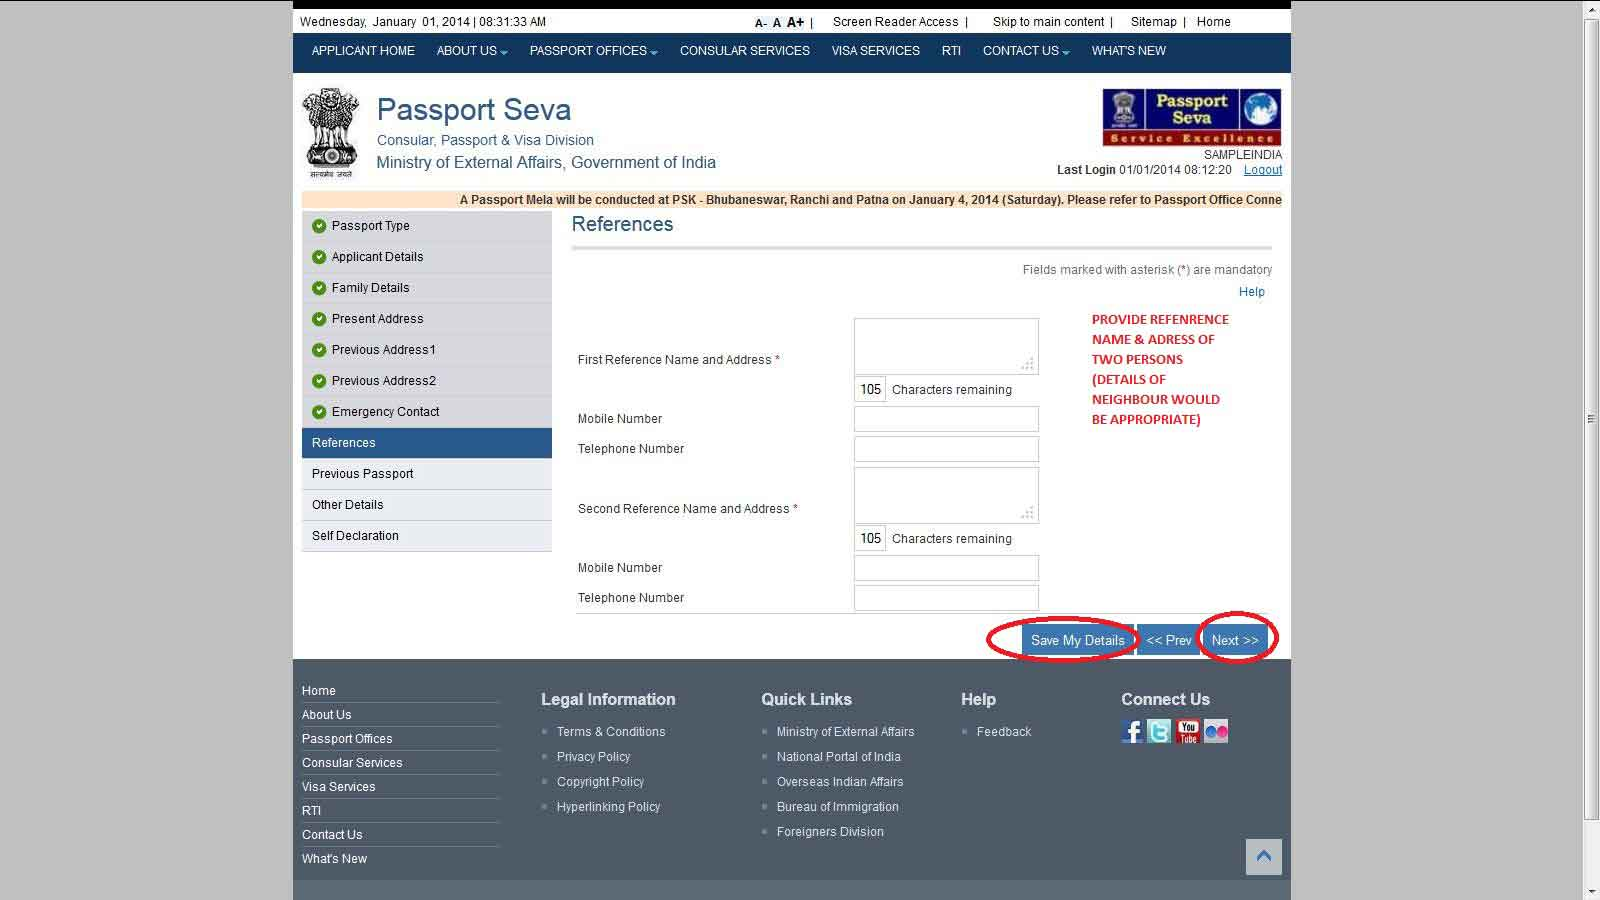 How To Apply For Passport Online, Online Passport Applicationtaxplore  Applyingmalaysianpassportforbabyinfographics